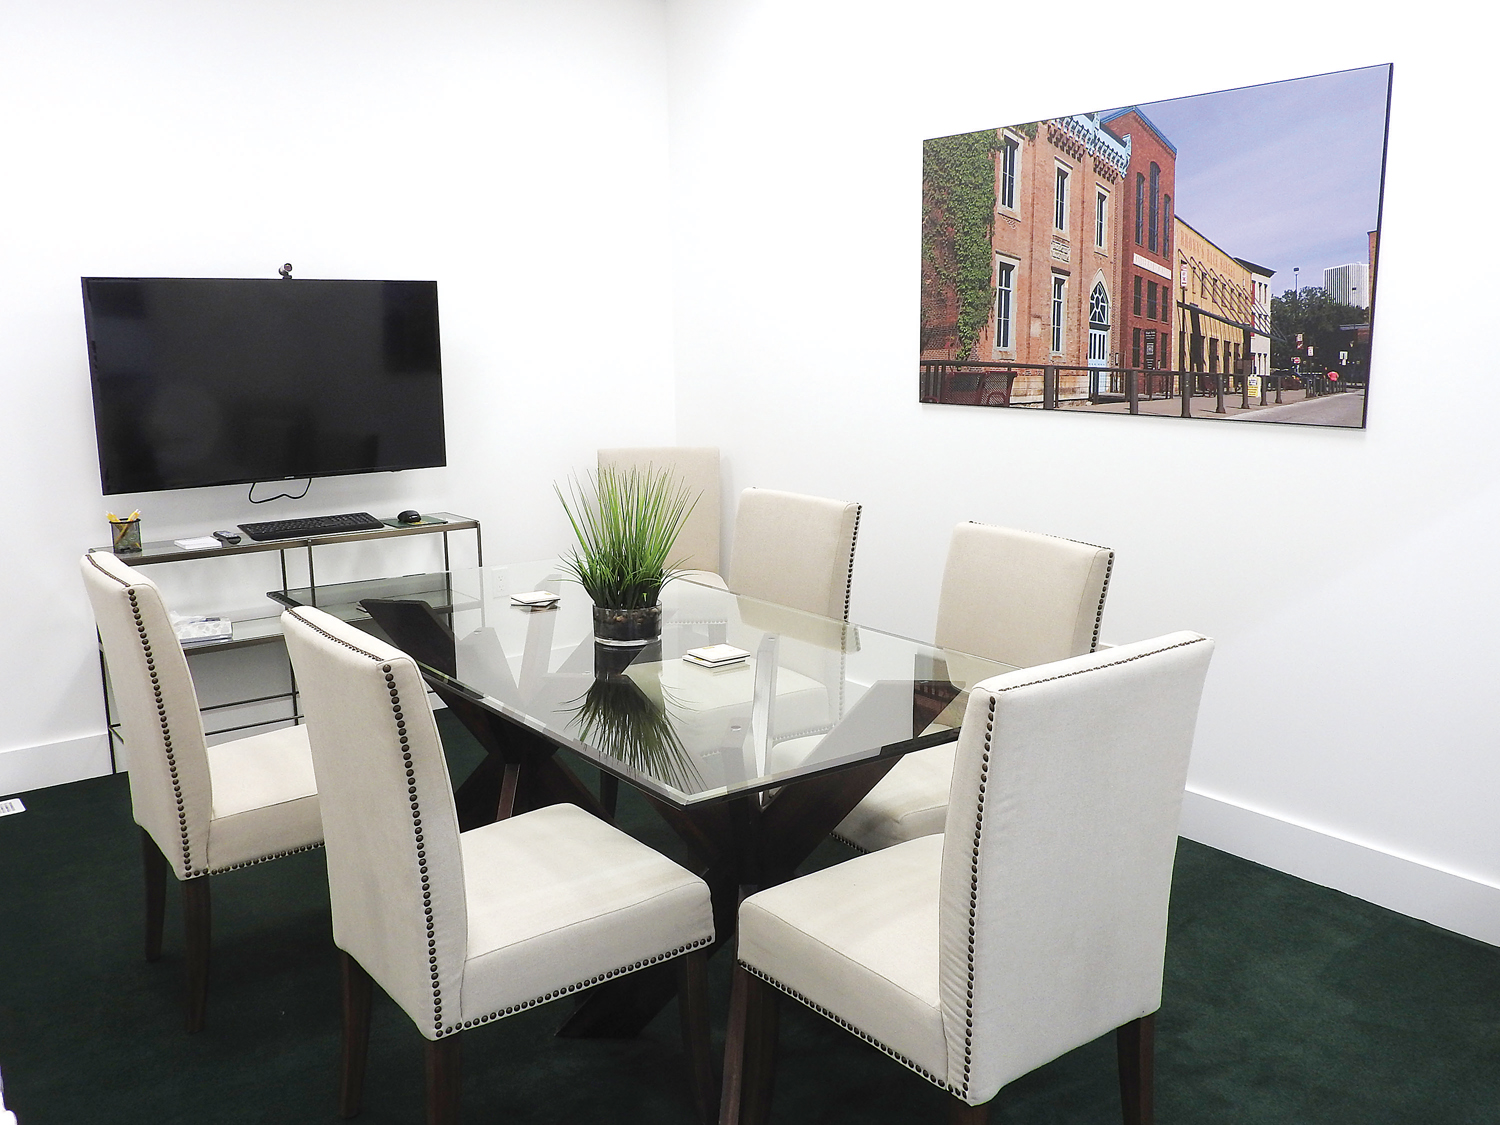 This meeting room benefits clients and agents alike.